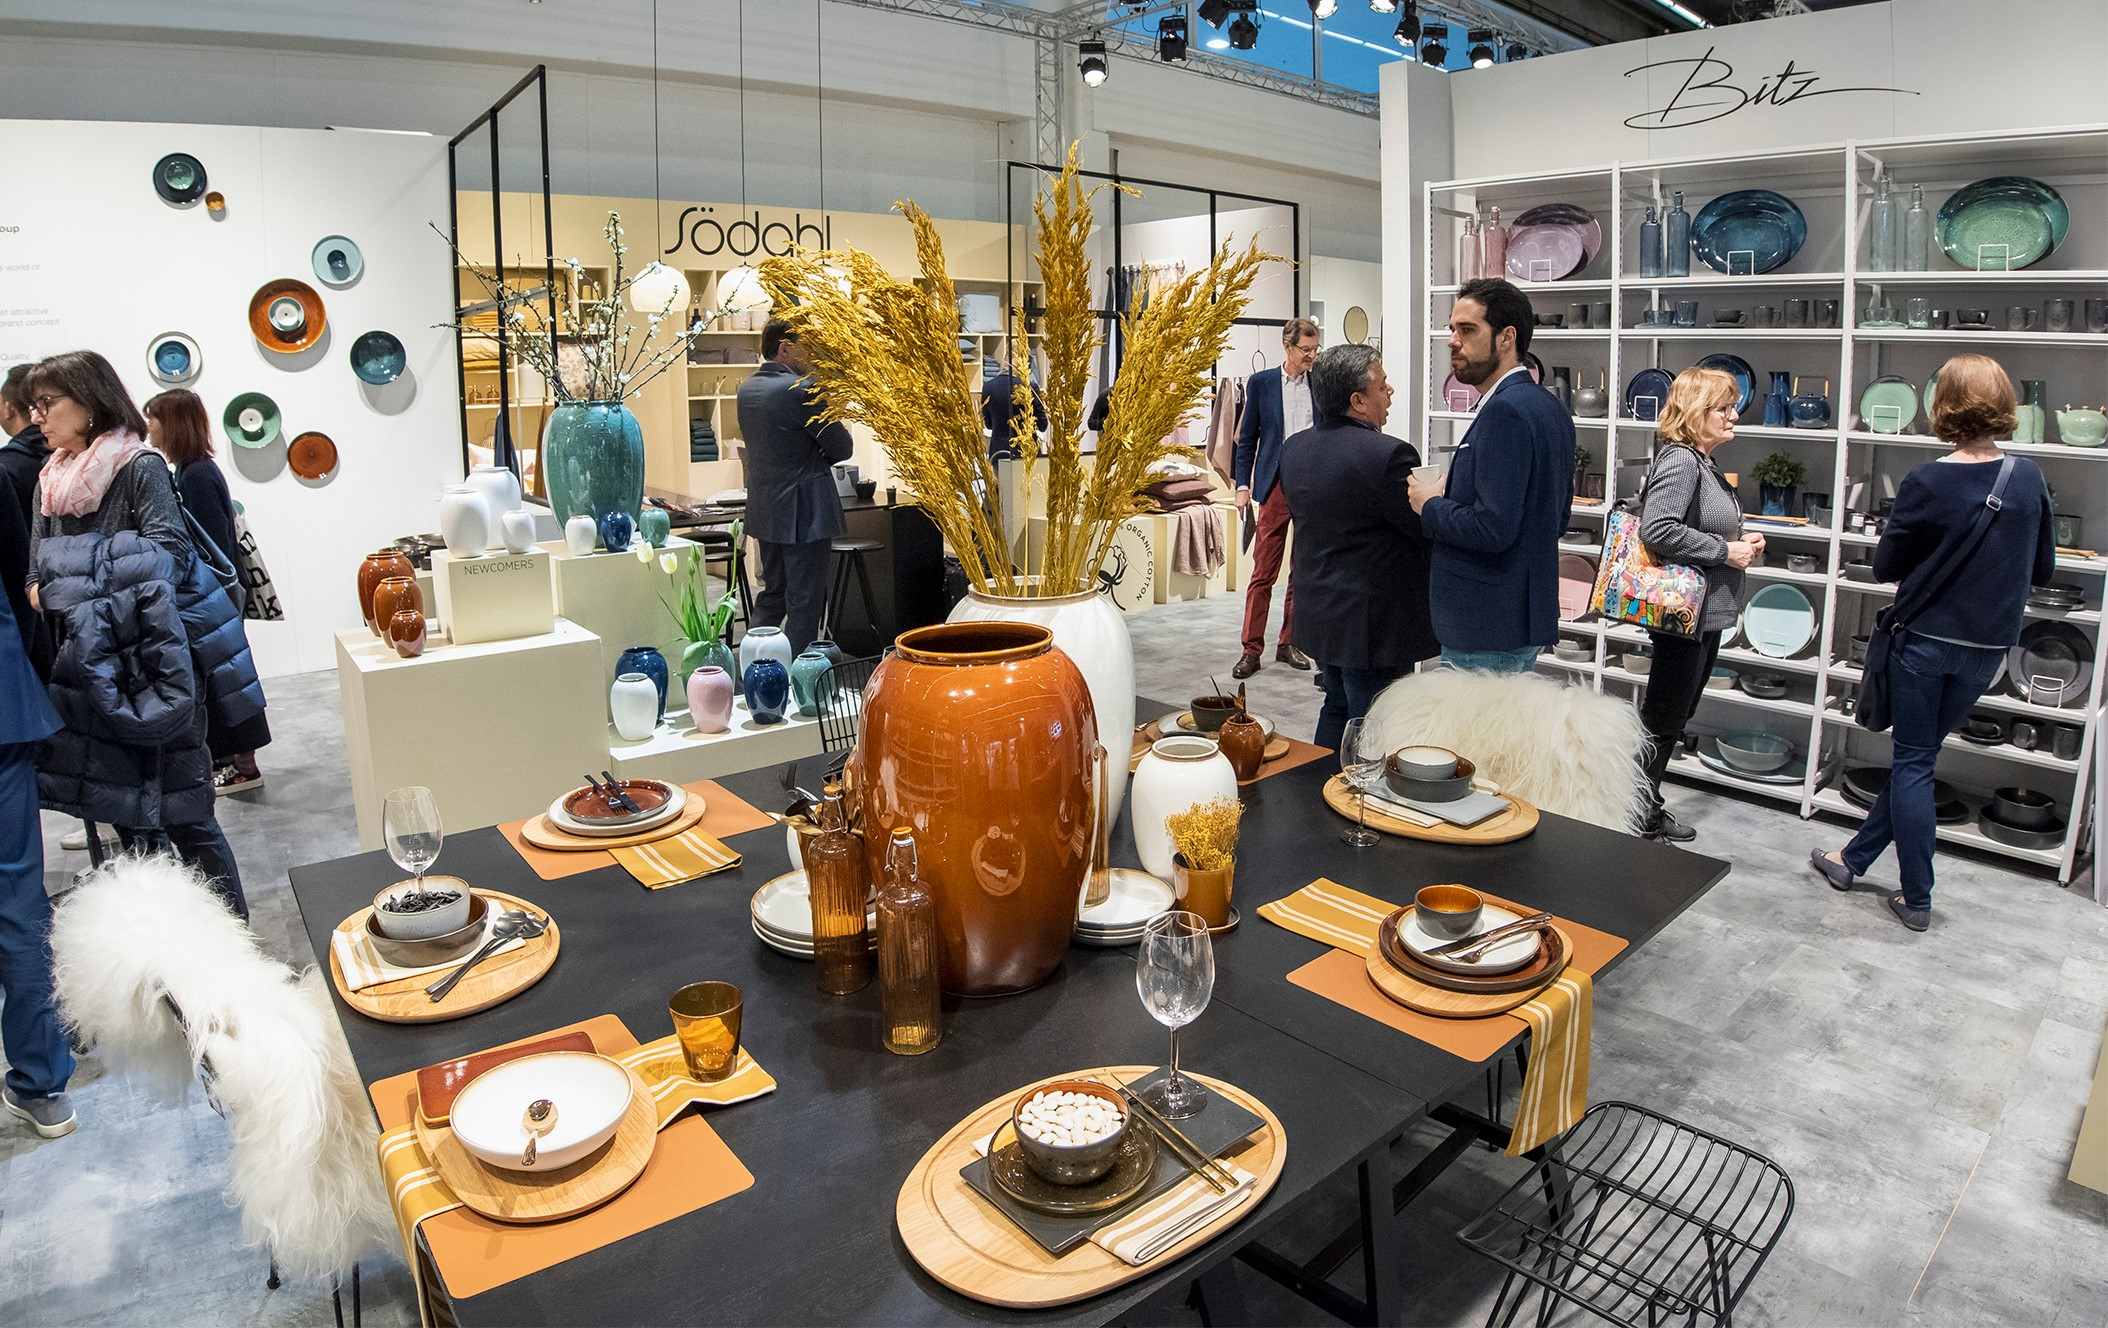 ambiente 2020 impacted by coronavirus and ciara  ambiente - messe frankfurt